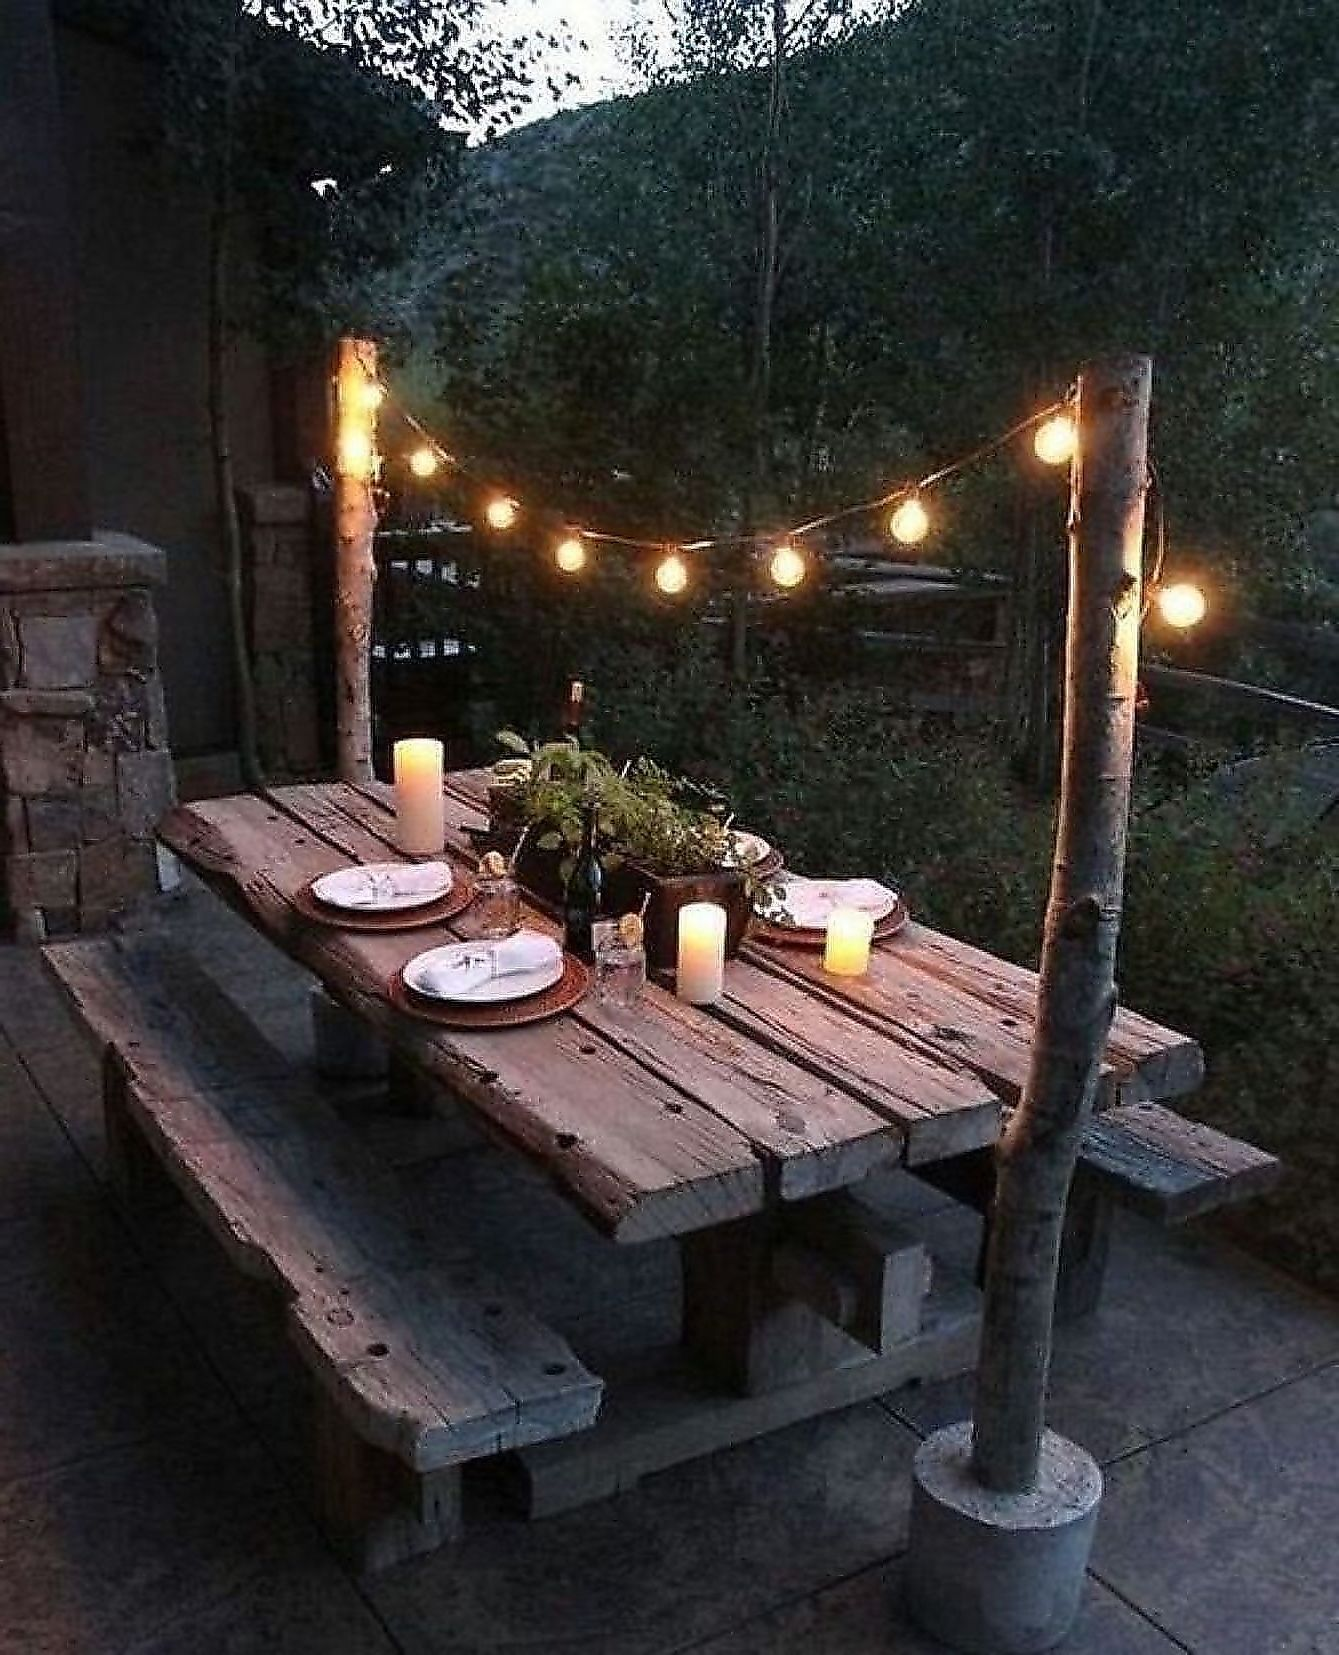 46 UNIQUE WAYS TO DECORATE YOUR SMALL GARDEN OUTDOOR DECOR